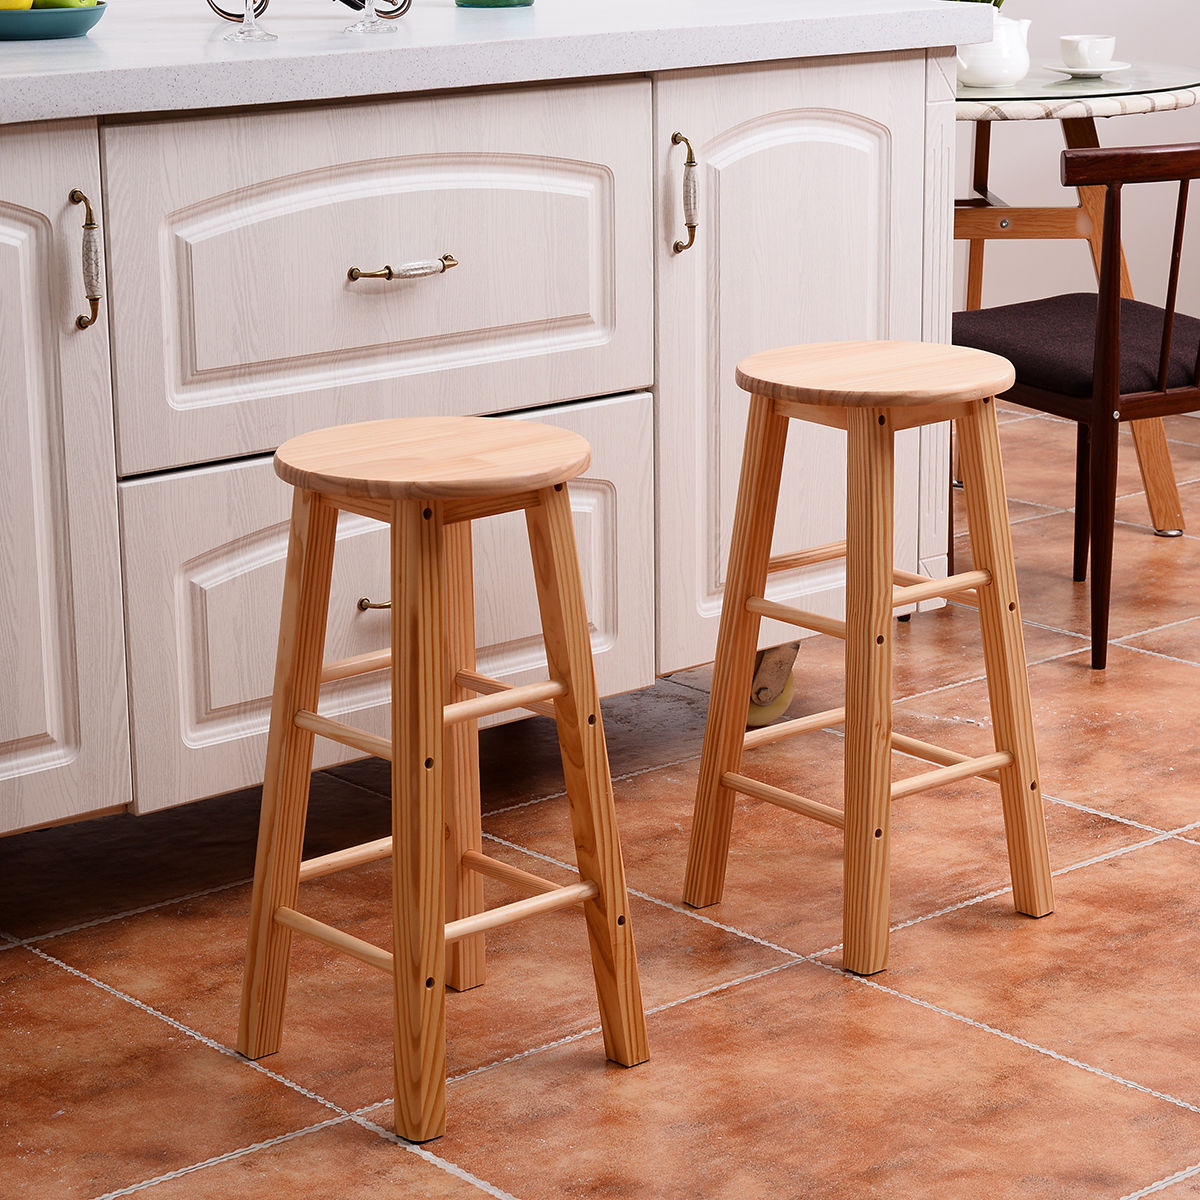 Kitchen Bar With Stools: Set Of 2 Wood Counter Stools Bar Stools Dining Kitchen